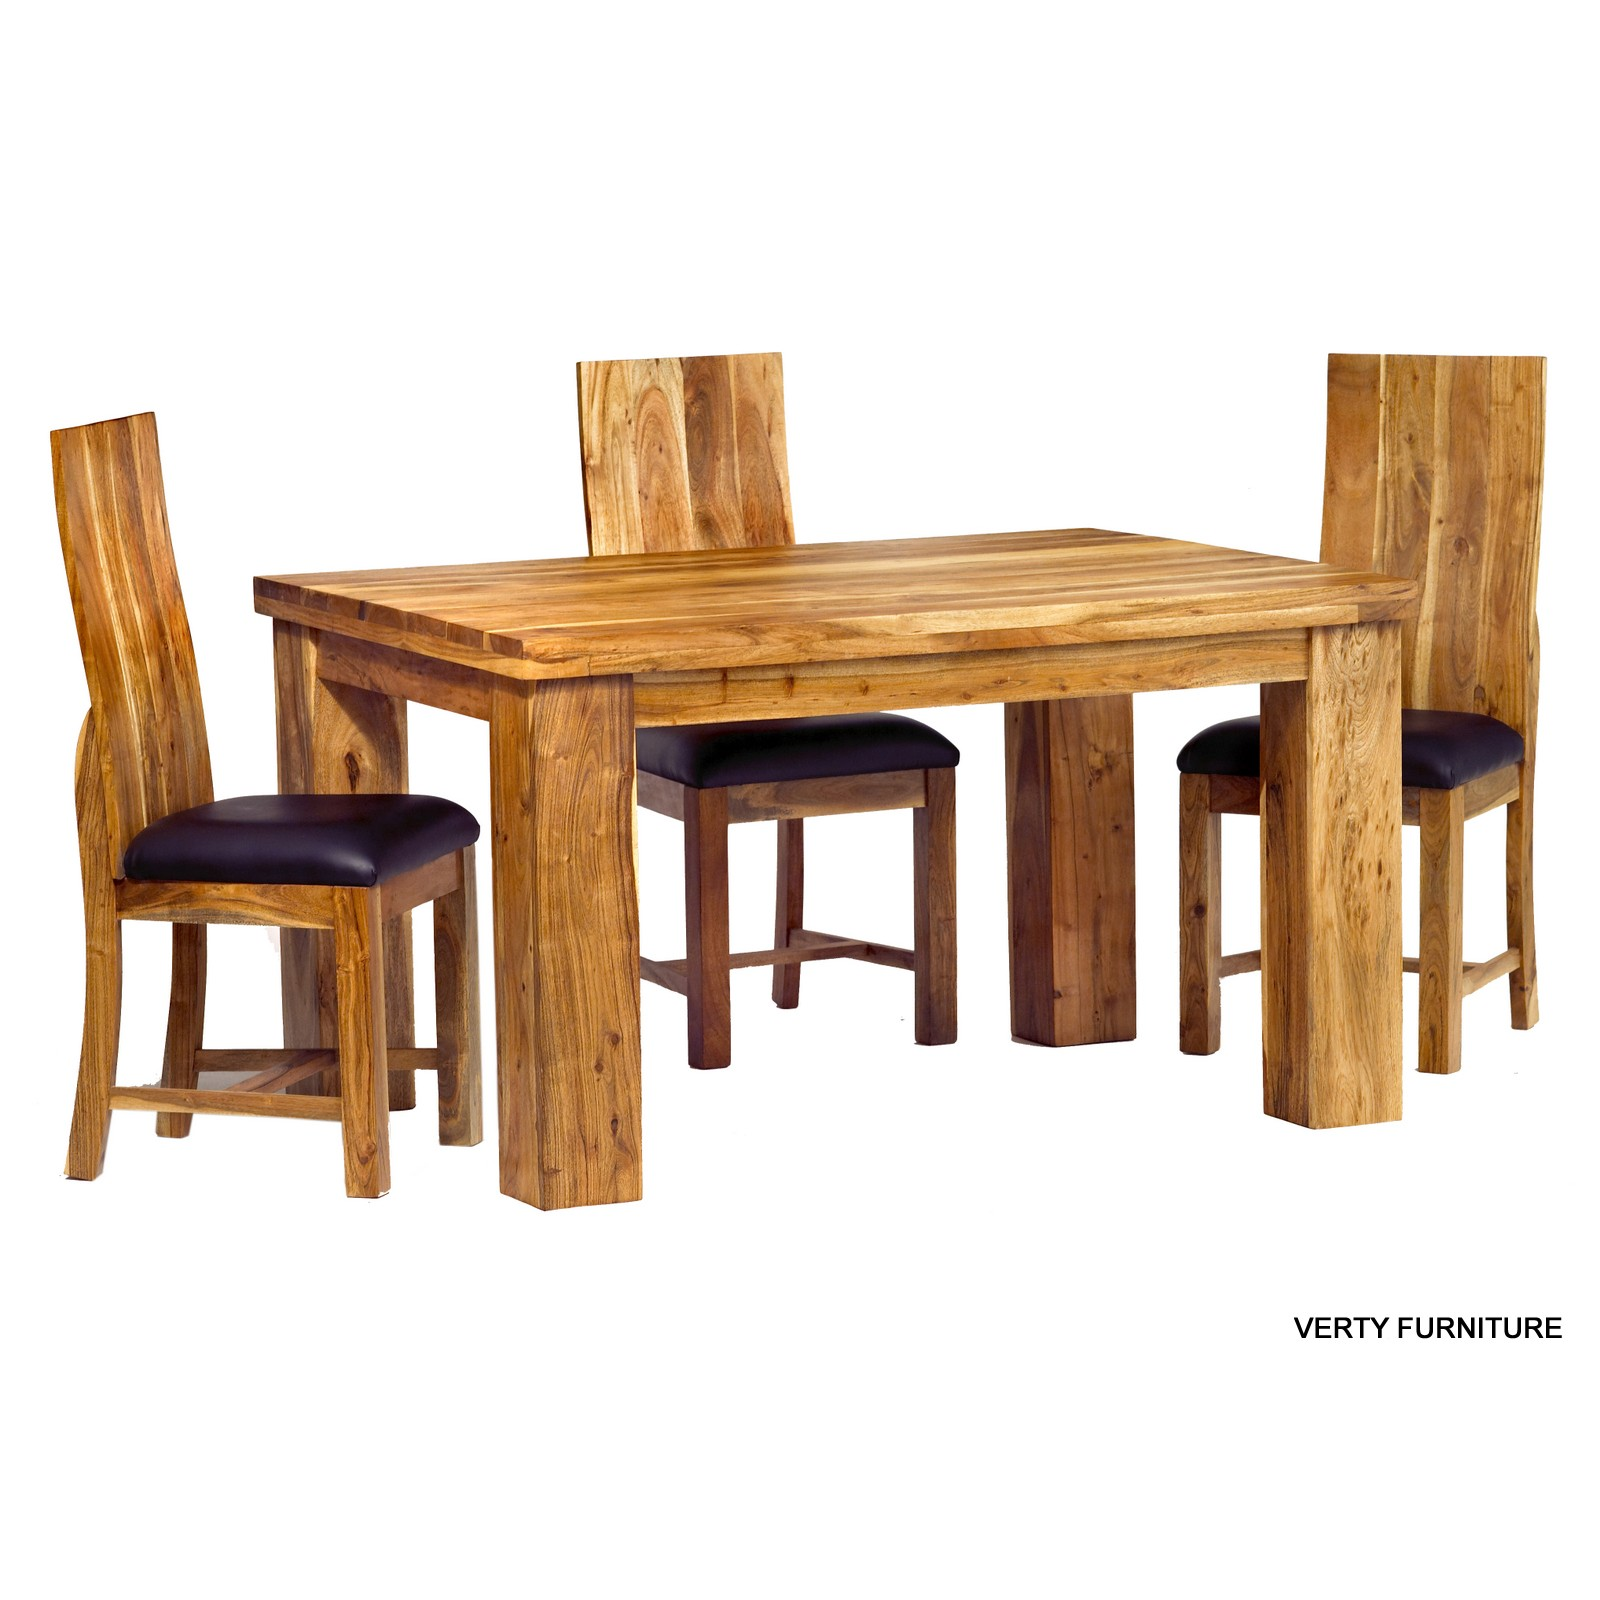 Acacia dining table small with 4 chairs verty indian for Small dinner table and chairs